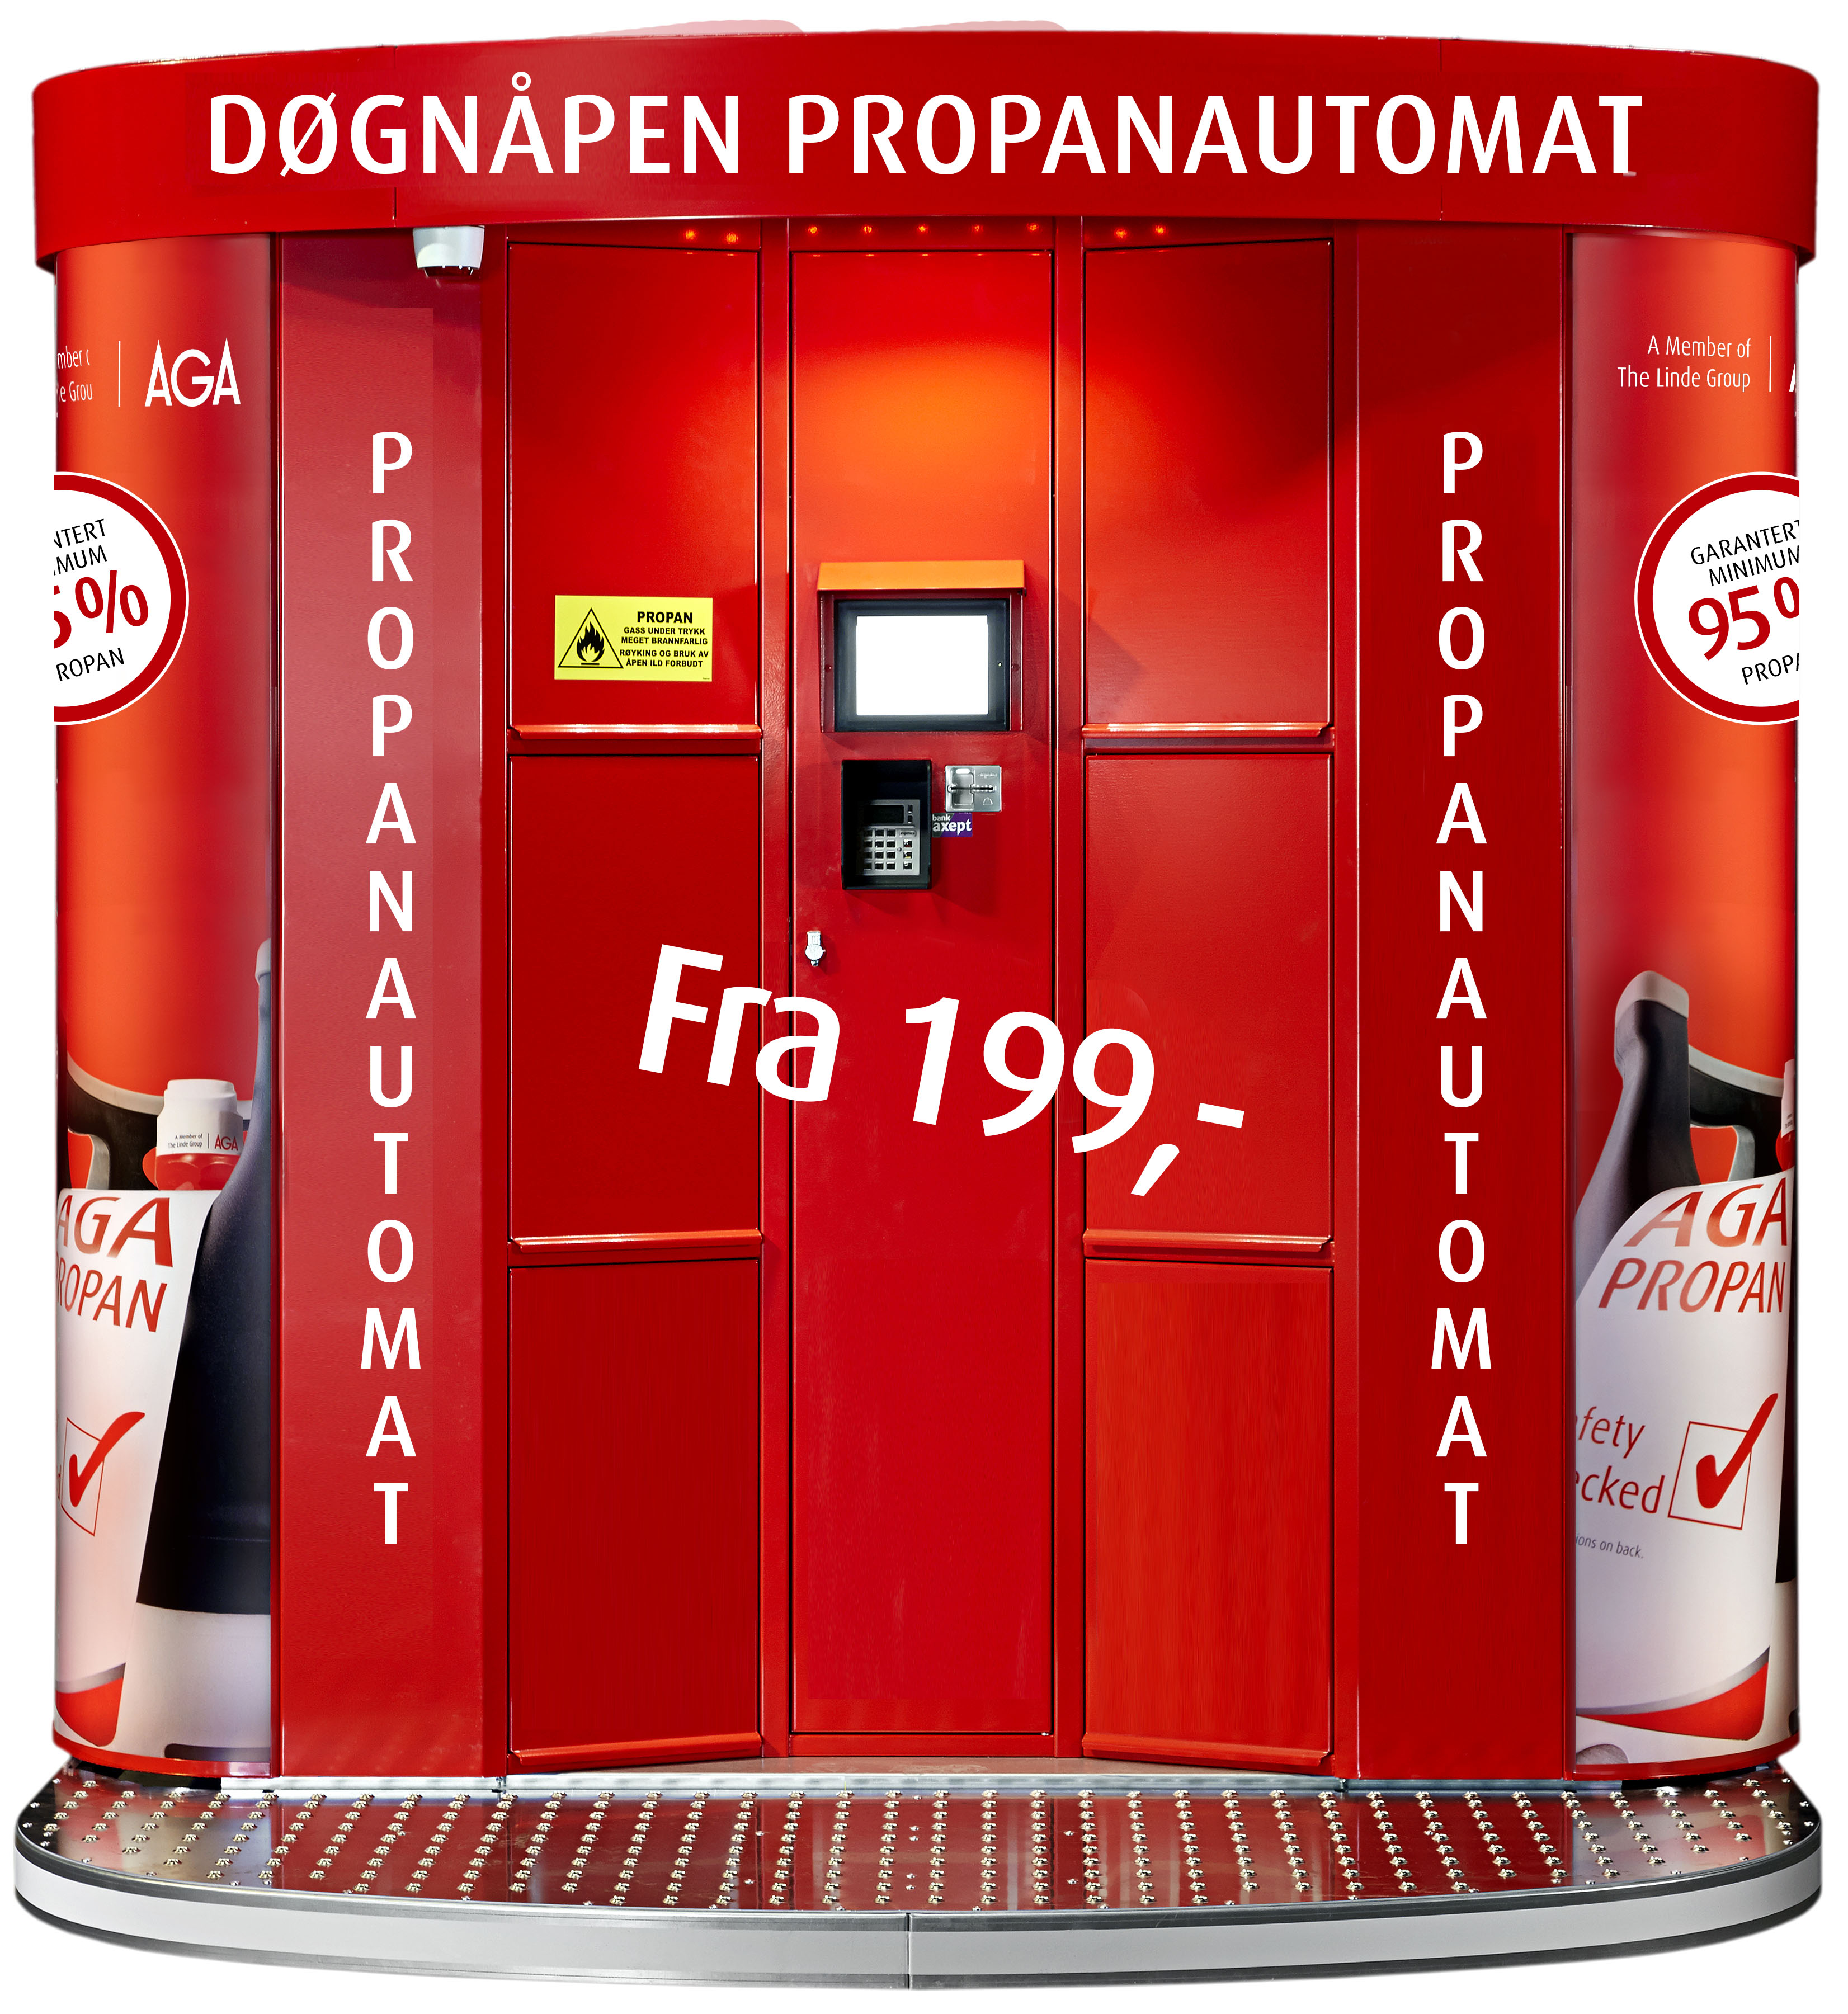 aga-propan_automat-front-no_price.jpg